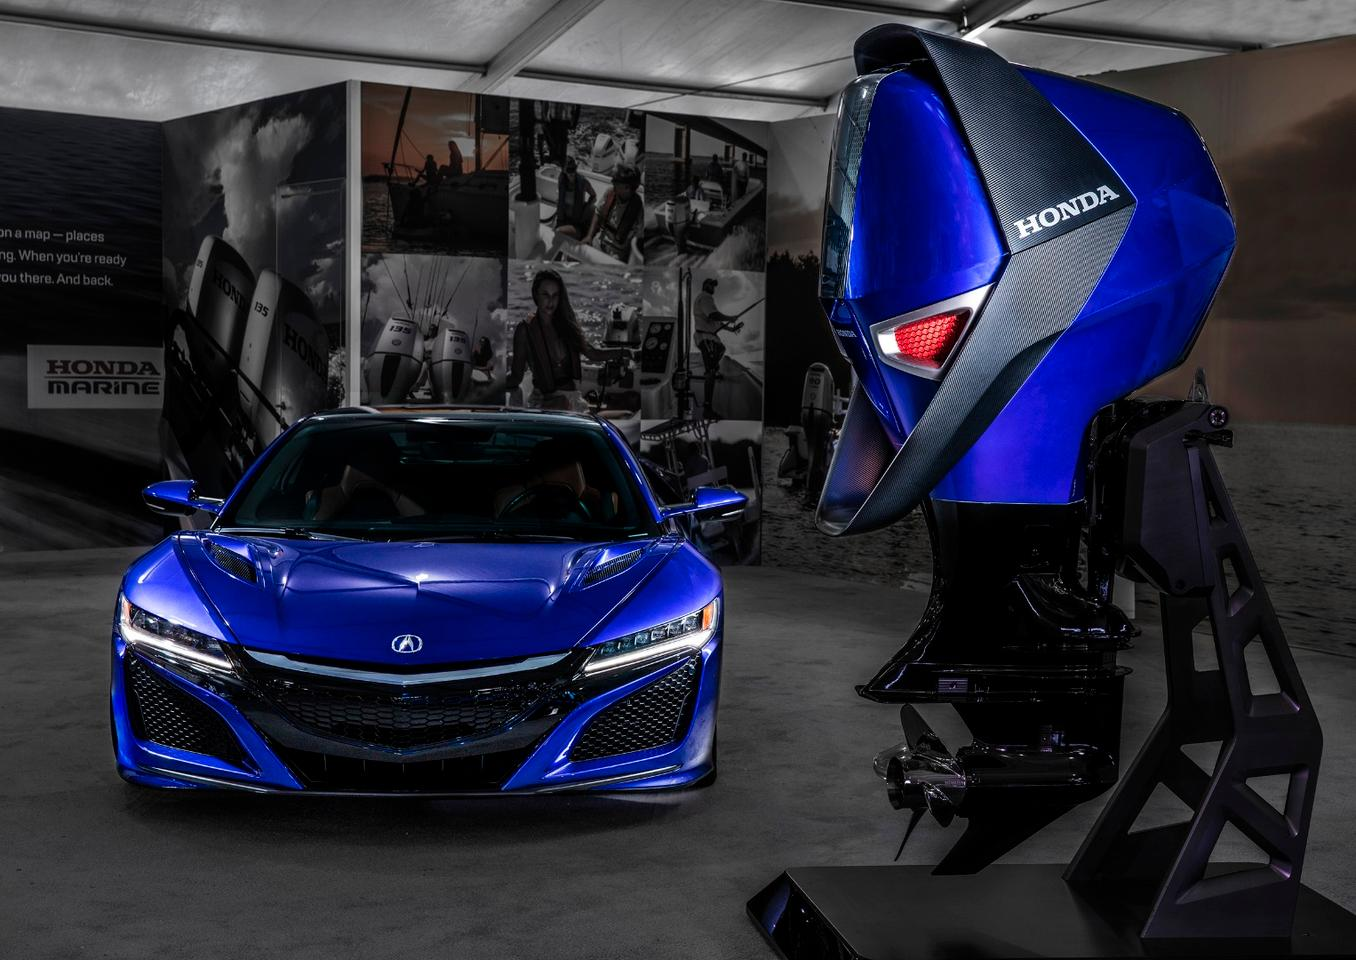 At the Miami show, Honda showed the concept engine with the car that inspired it